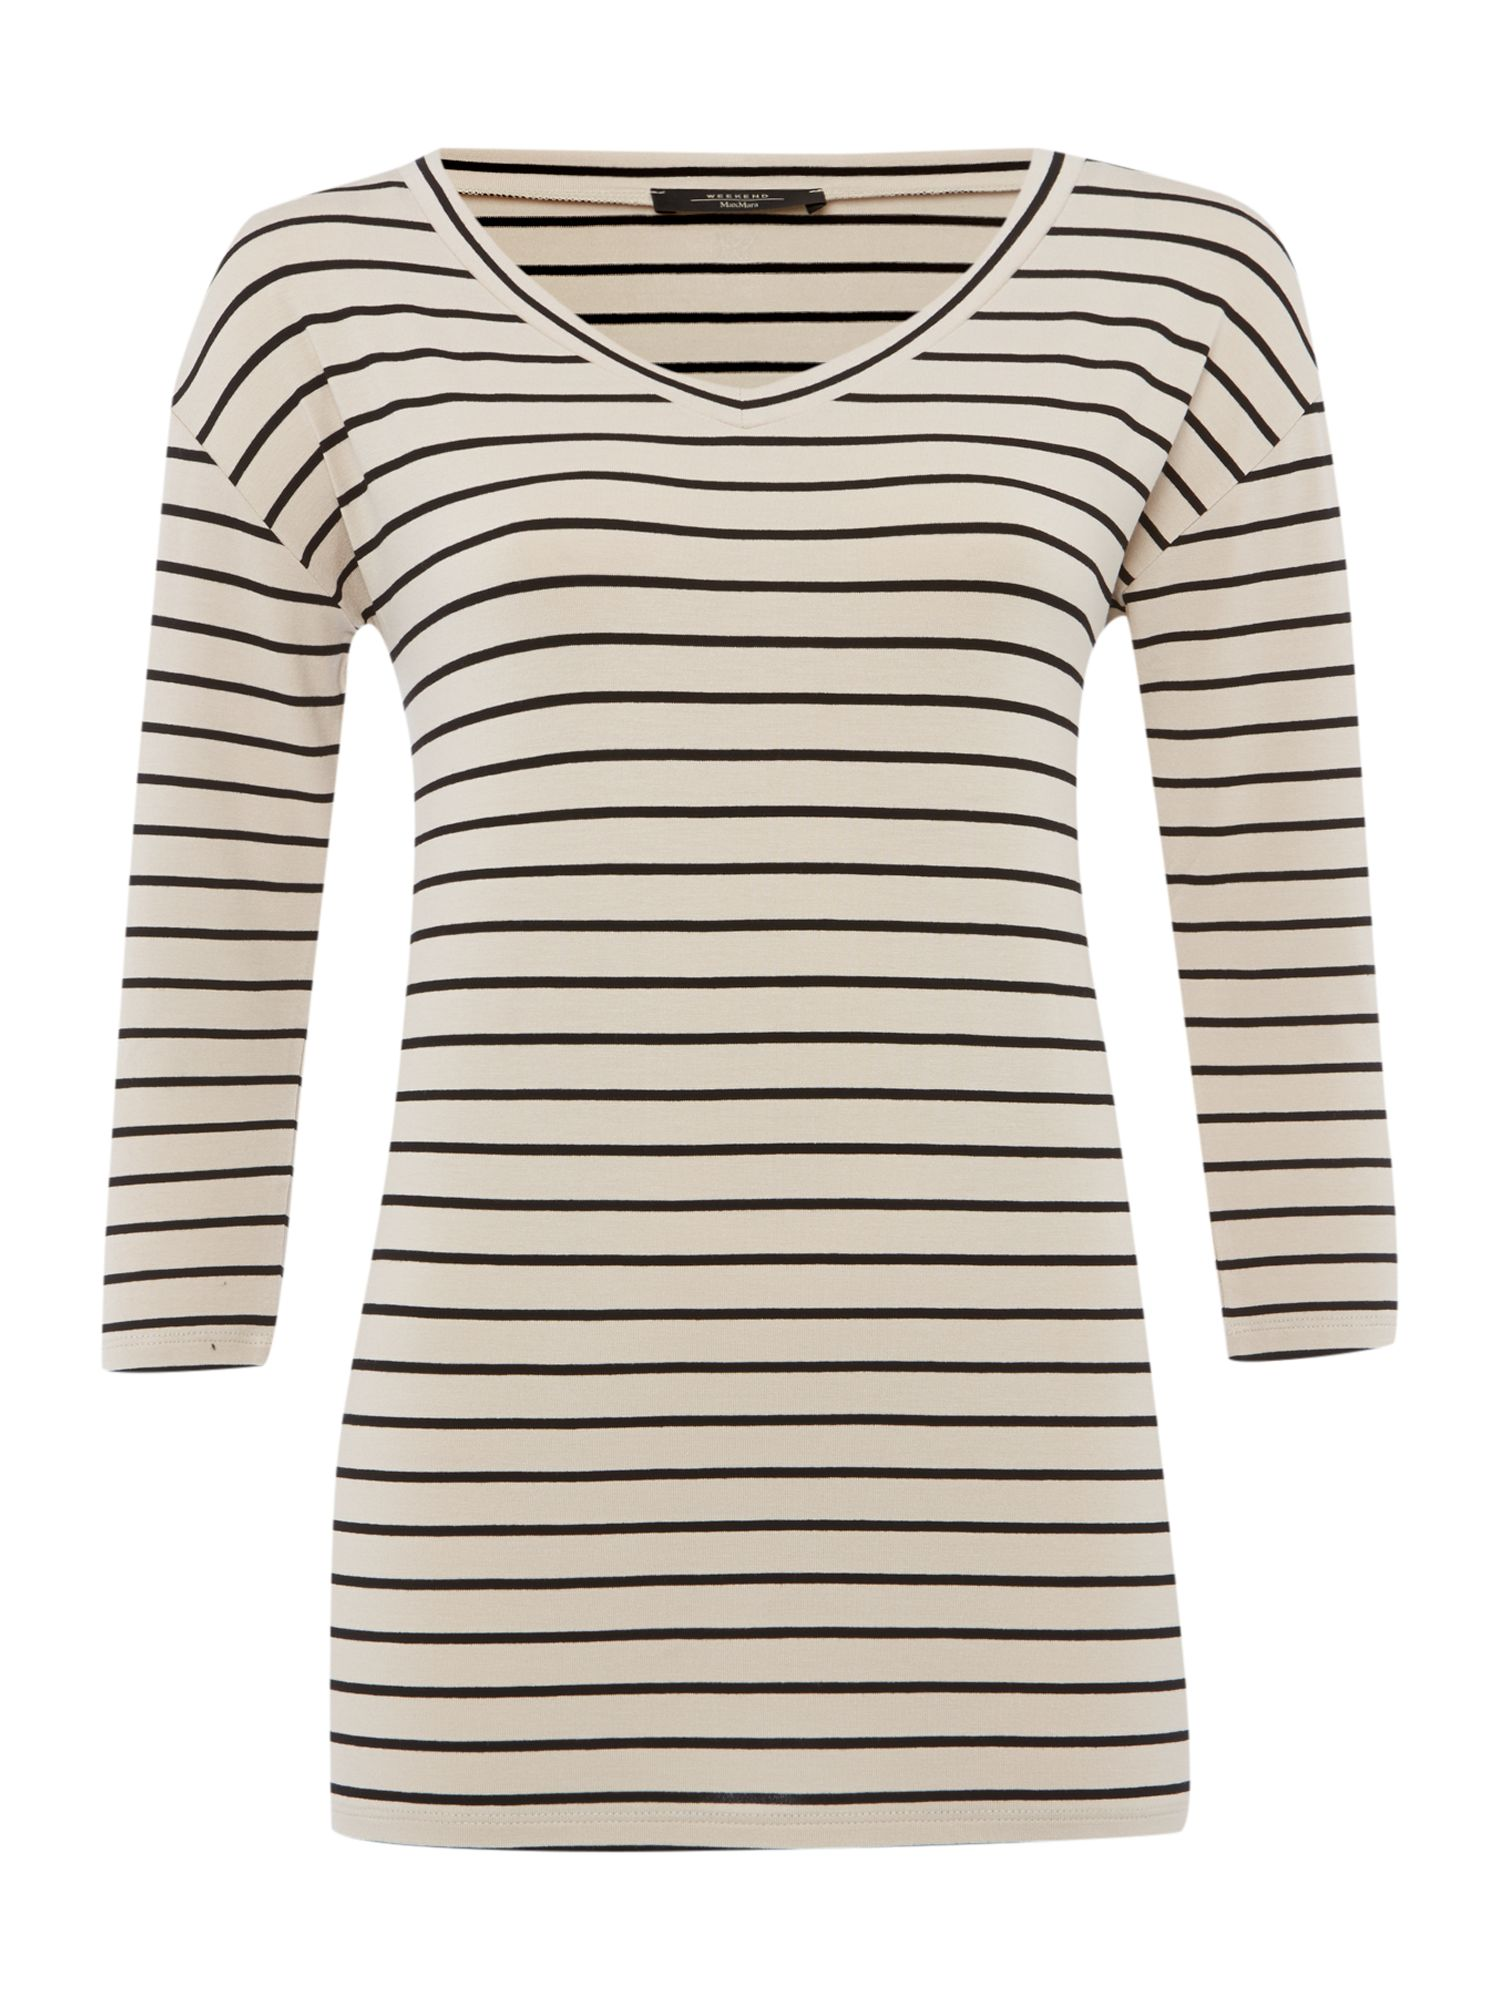 Kali 3/4 sleeved striped top